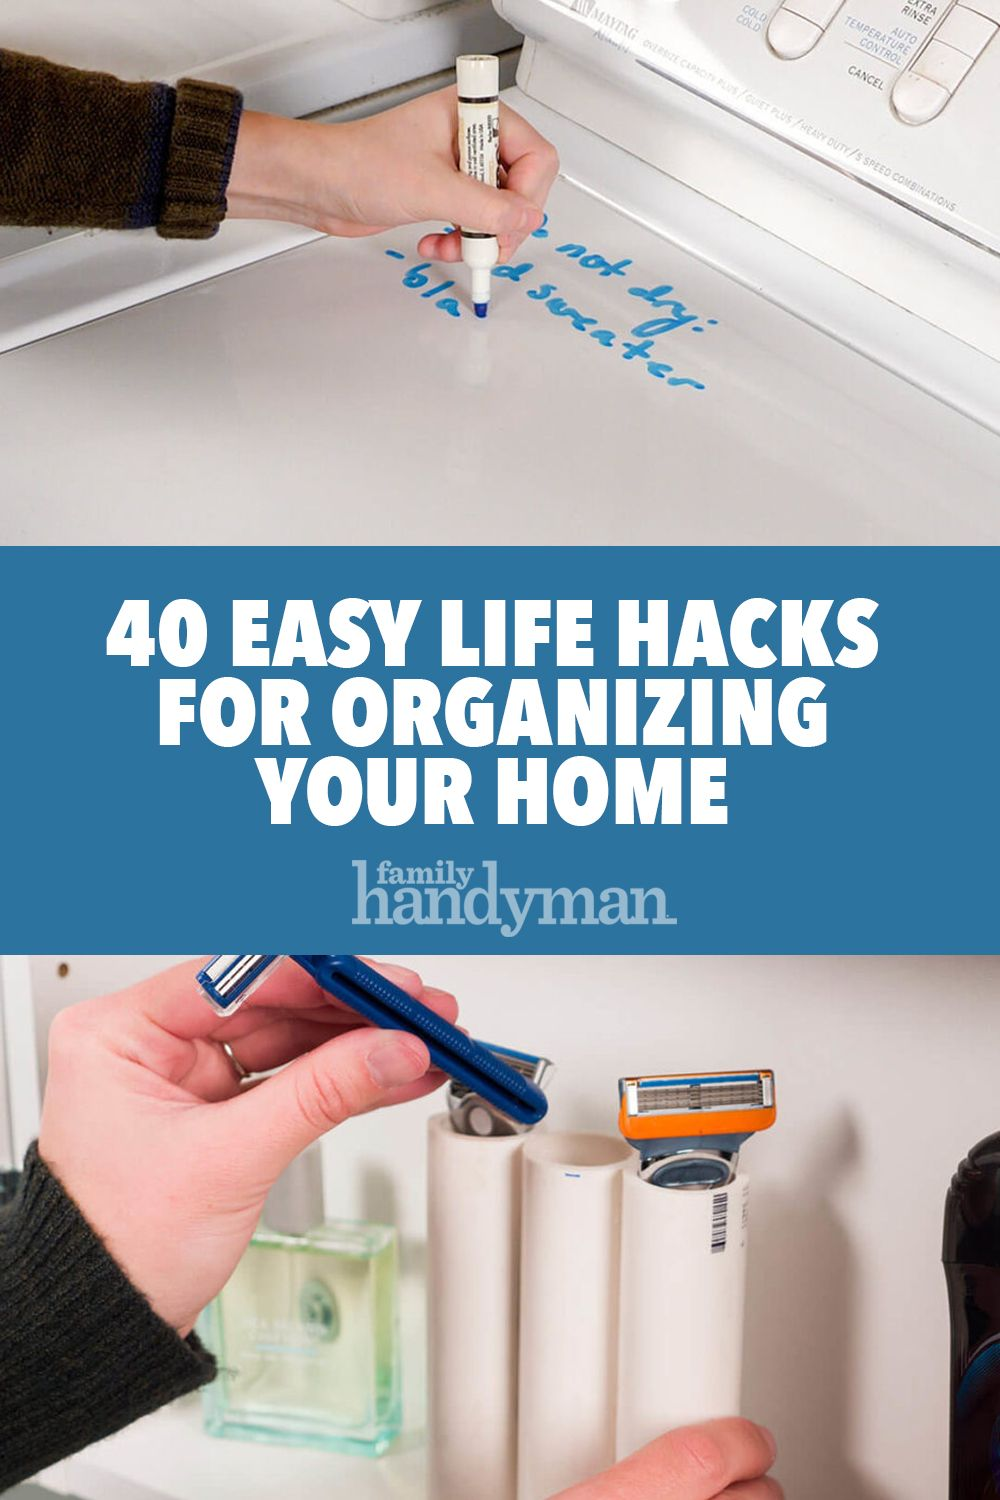 40 Easy Life Hacks For Organizing Your Home Organizing Your Home Simple Life Hacks Home Organization Hacks